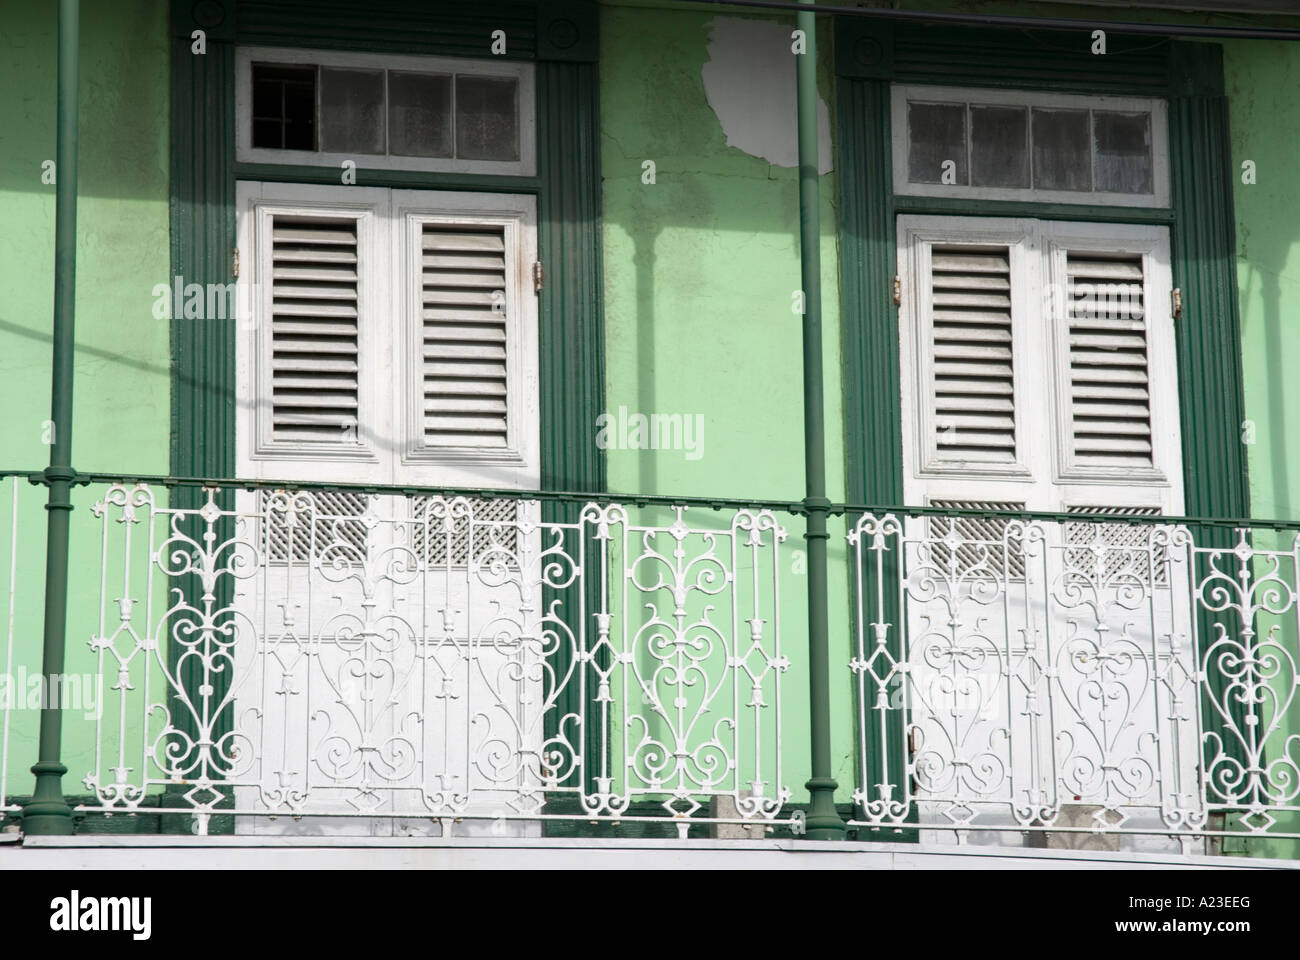 Balcony railing and doors of bright green building Coleridge Street Bridgetown Barbados & Balcony railing and doors of bright green building Coleridge Stock ...